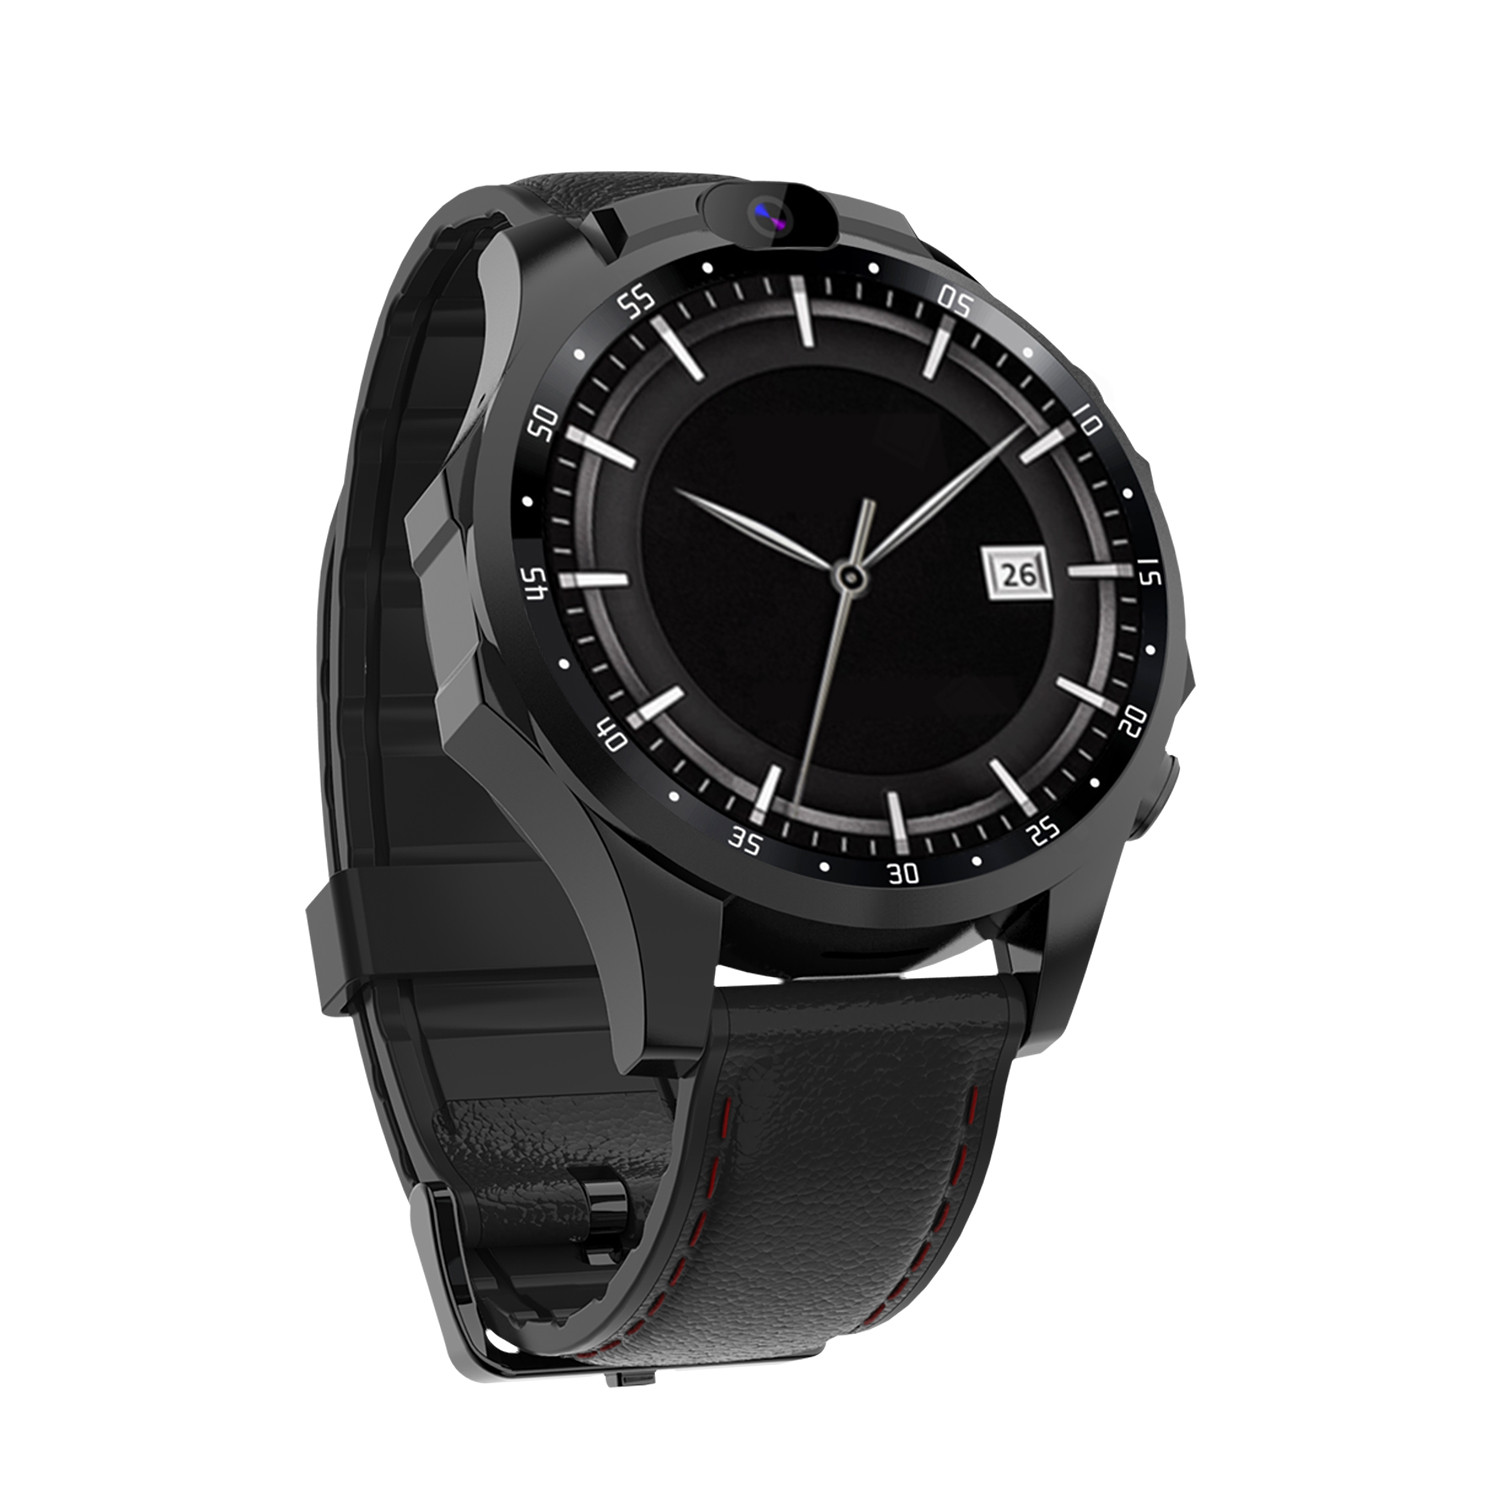 V9 Smart Watch Heart Rate Monitor Real-time Location Dual Camera Lens 800mAh Battery Smartwatch Black